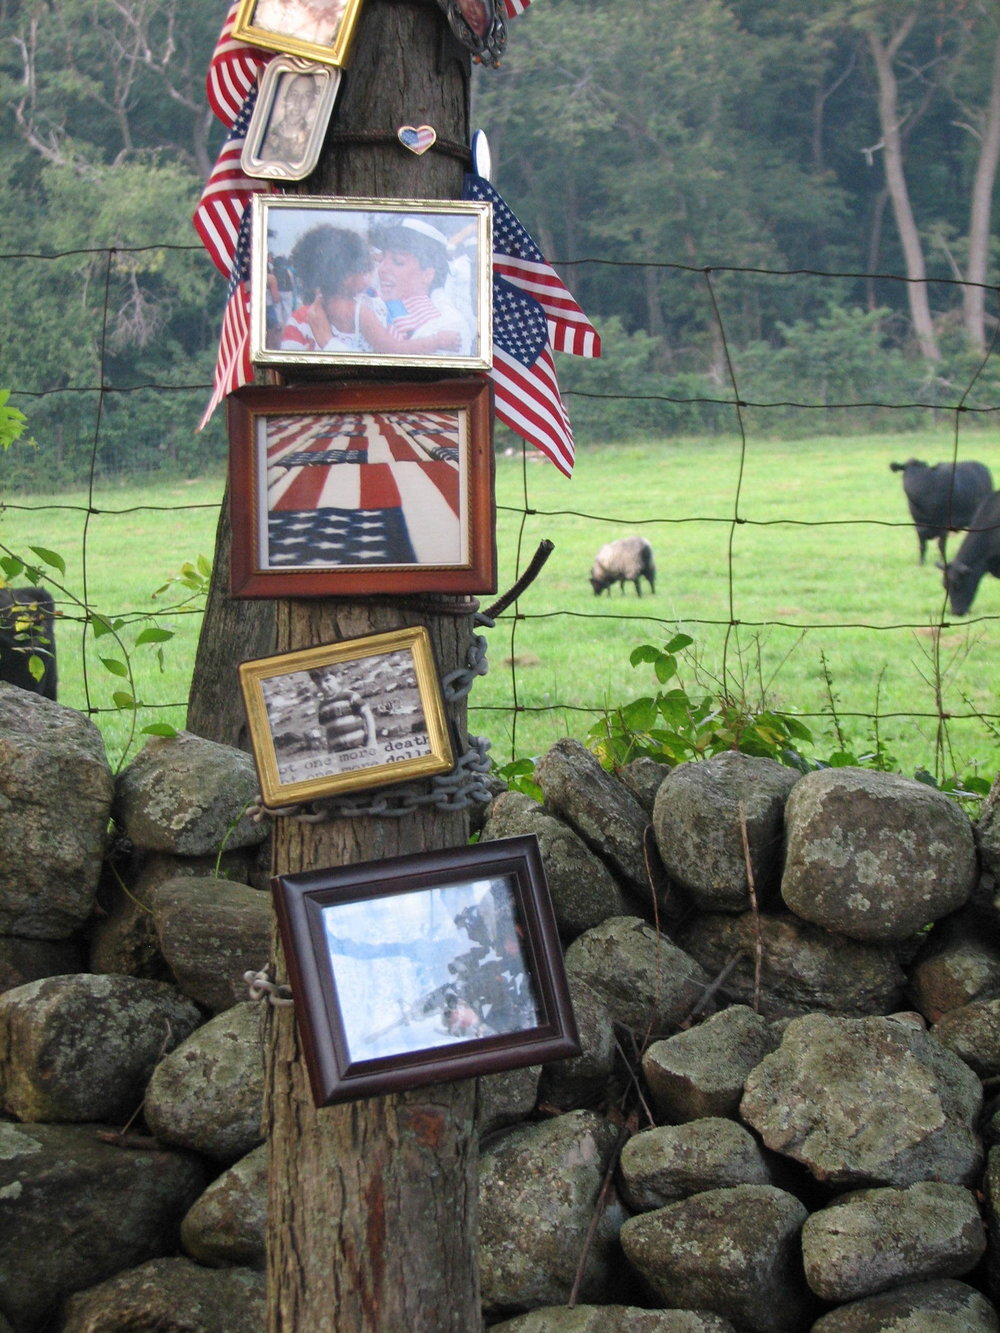 Iraq War 3 portraits&cows.jpg